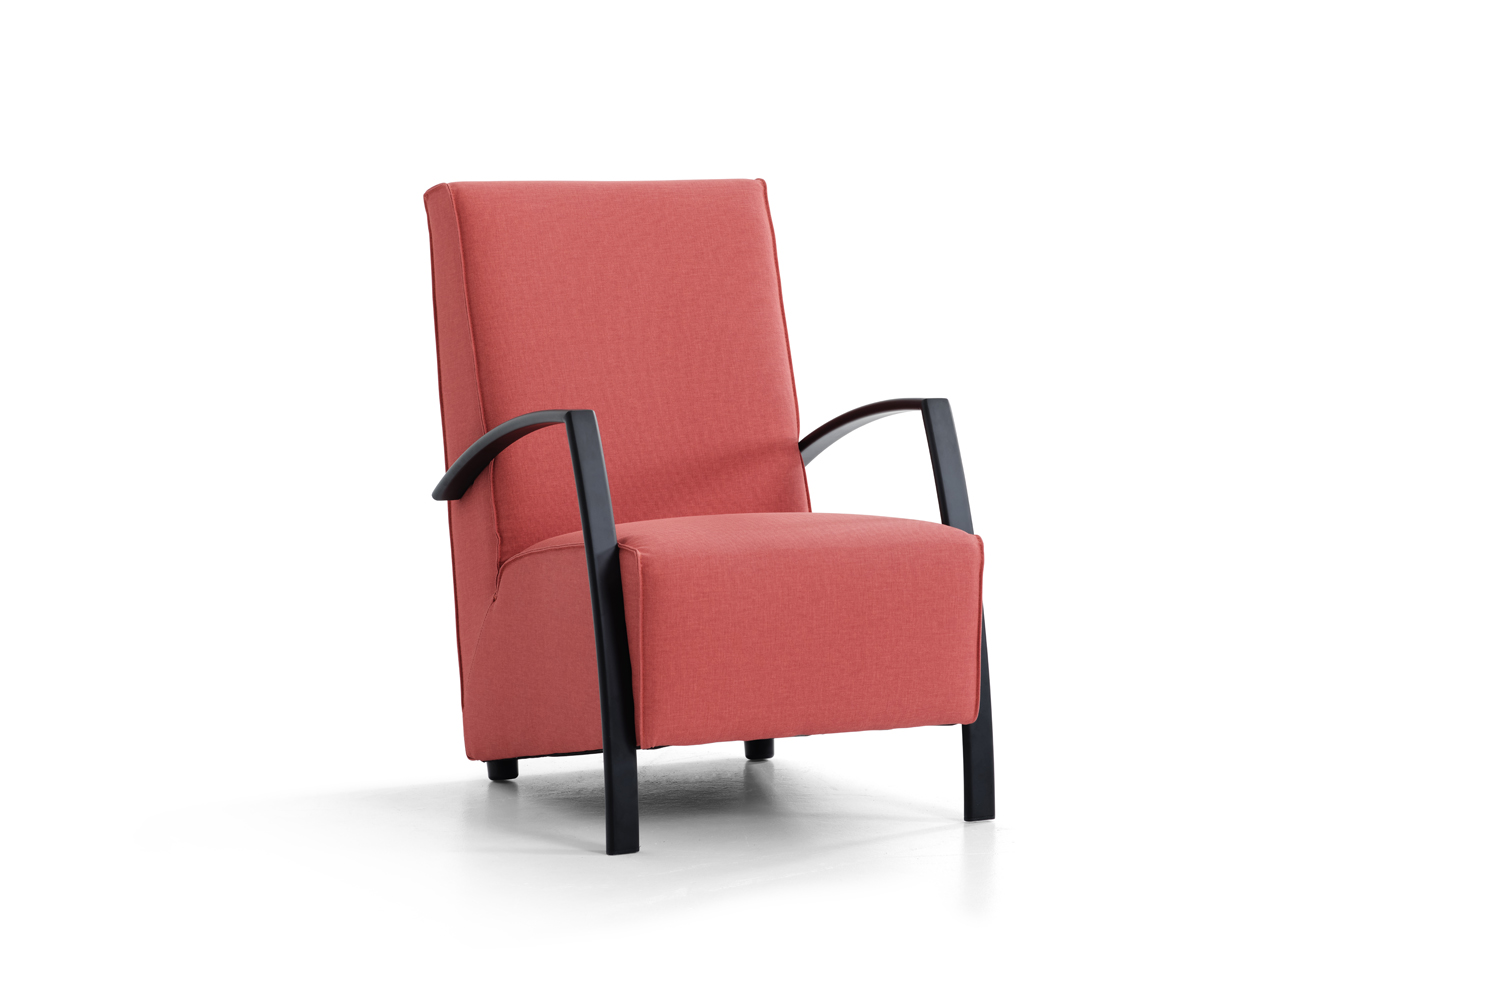 davant_addproducts_bydavant_abel_fauteuil_projectinrichting_kantoor